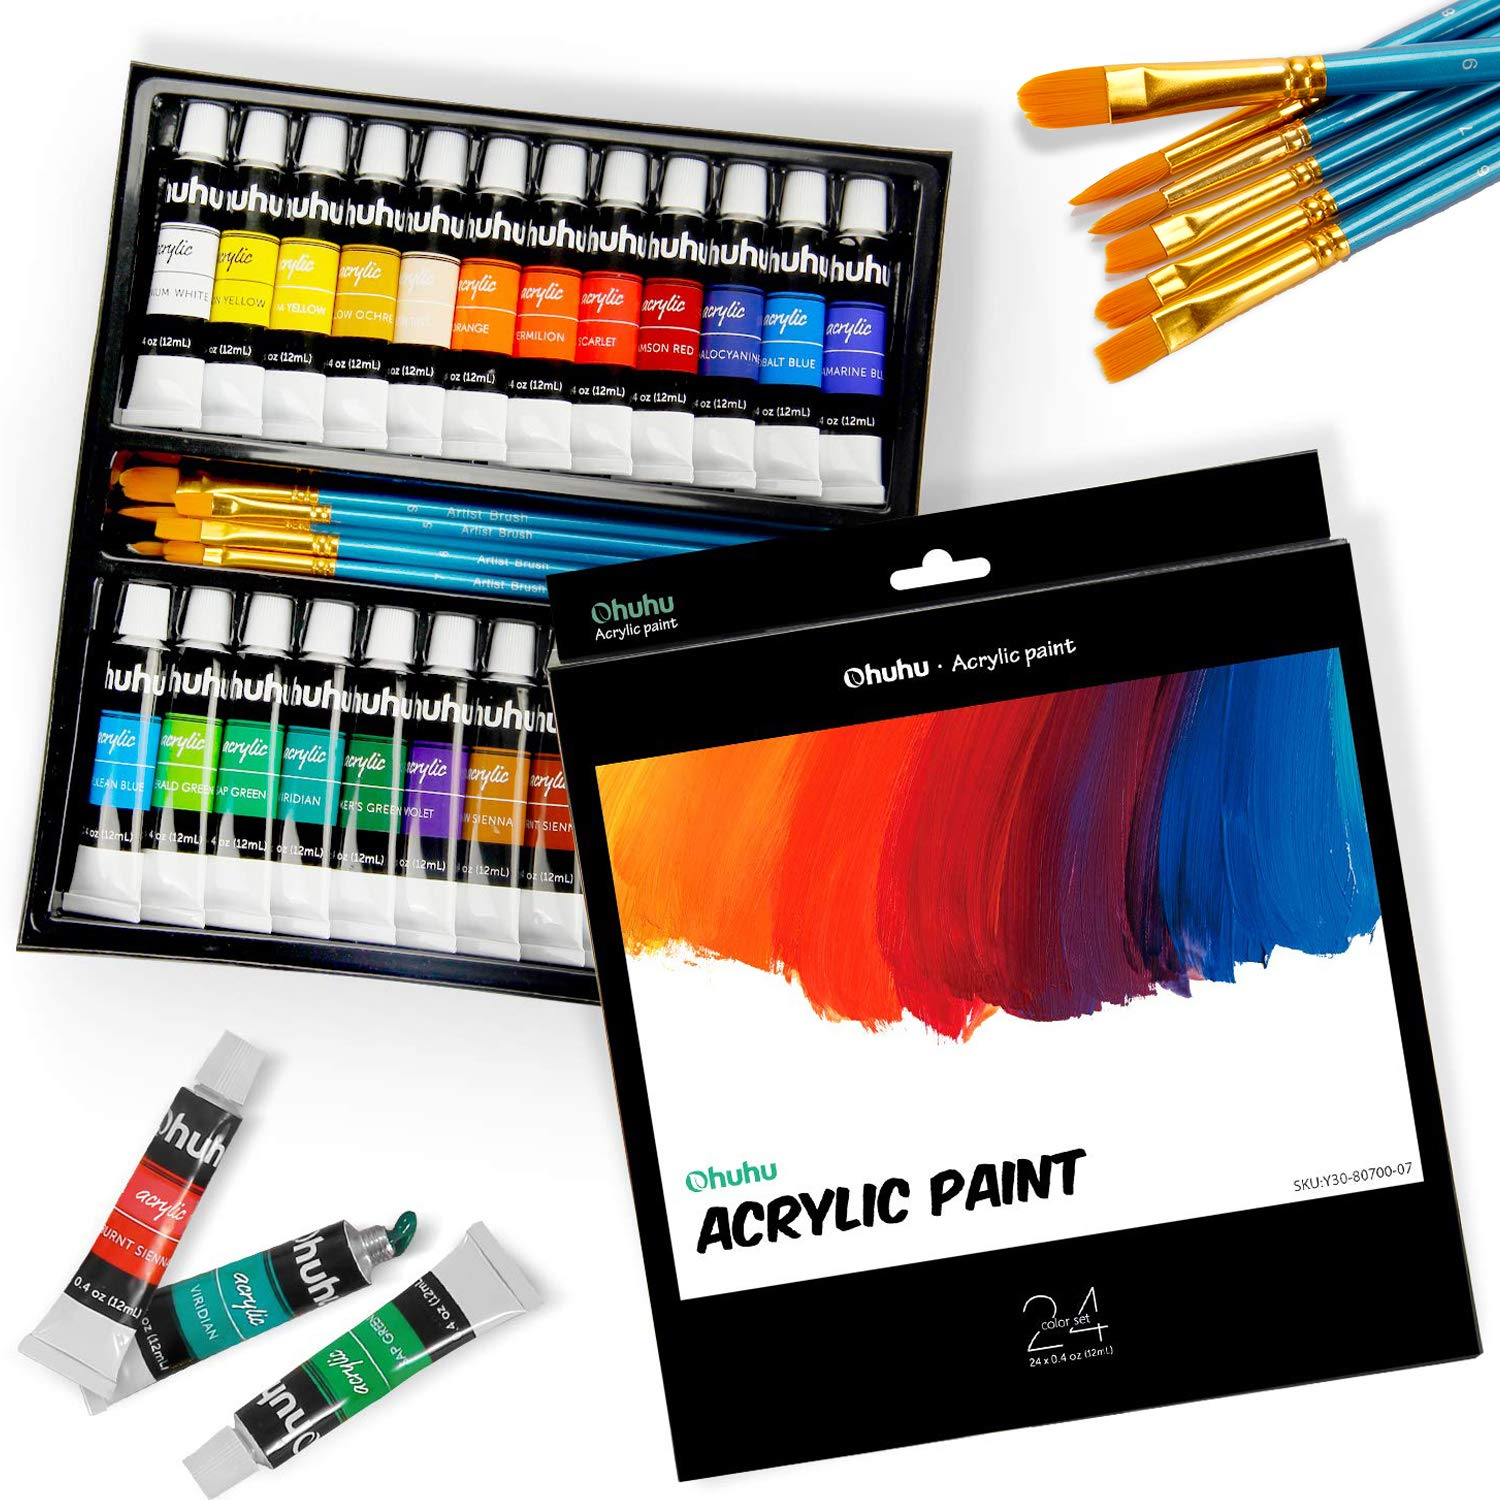 Ohuhu Complete Acrylic Paint Set - 24х Rich Pigment Colors - 6 x Art Brushes - for Painting Canvas, Clay, Ceramic & Crafts, Non-Toxic & Quick Dry - for Kids & Adults Christmas Gifts by Ohuhu